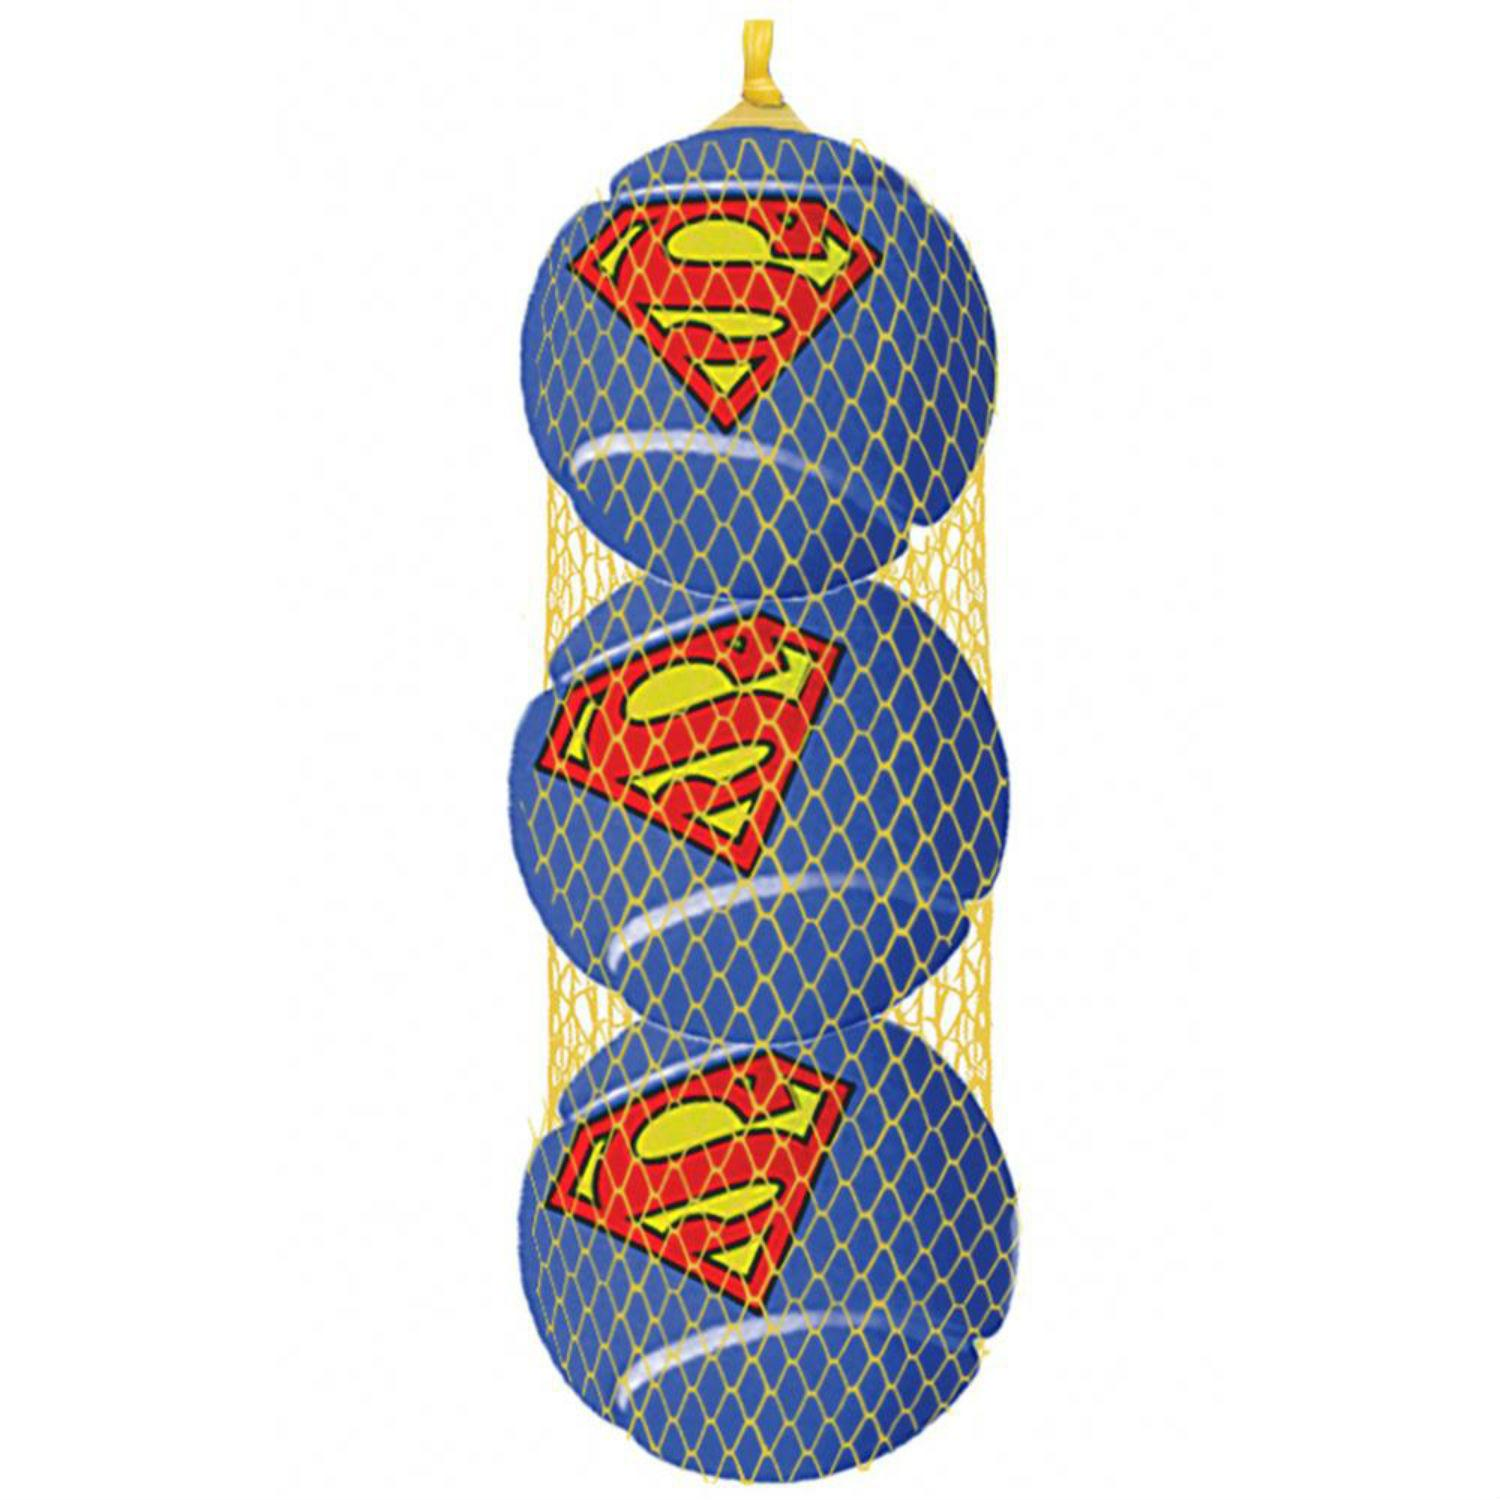 Superman Squeaky Tennis Ball Dog Toy by Buckle-Down